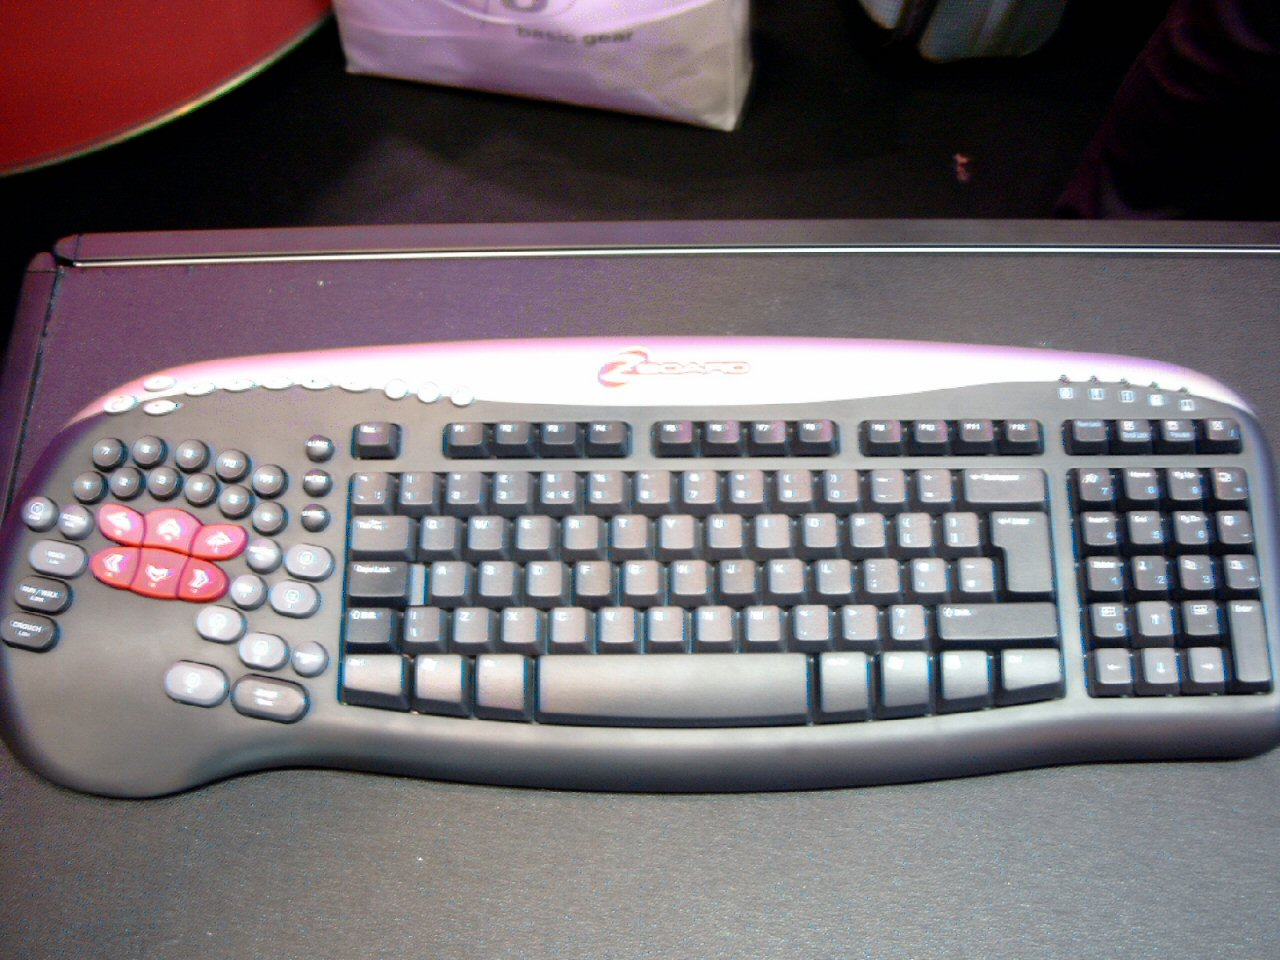 8bea4f6d2a9 CTS - 2006 :: The Zboard FANG for gamers - Peripherals - Feature - HEXUS.net